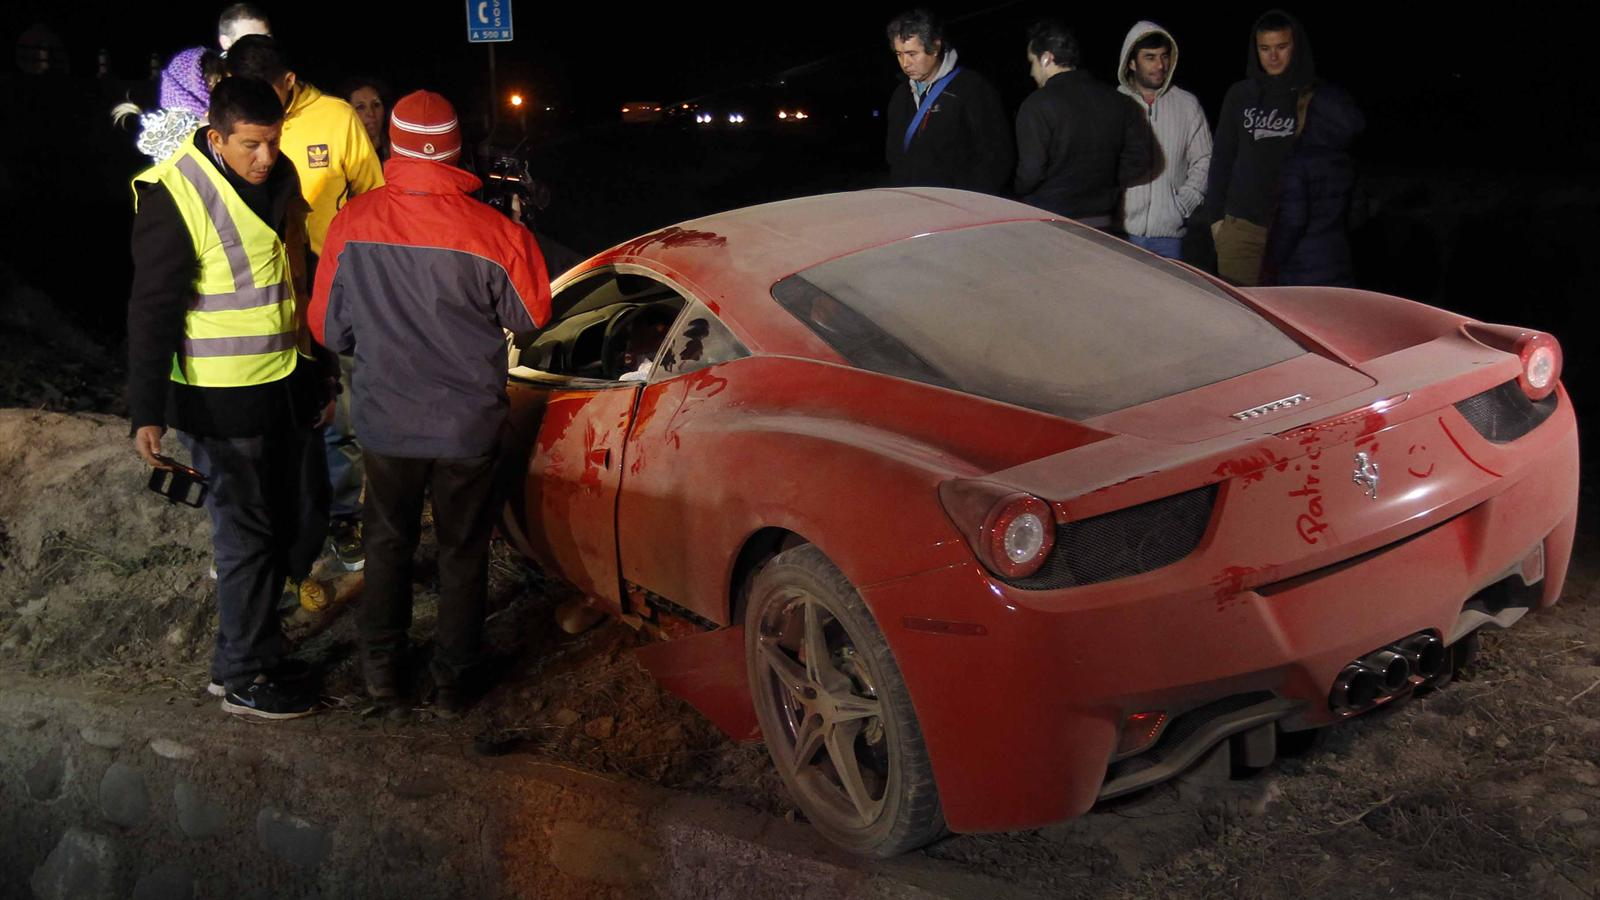 Chilean Soccer Player Car Accident